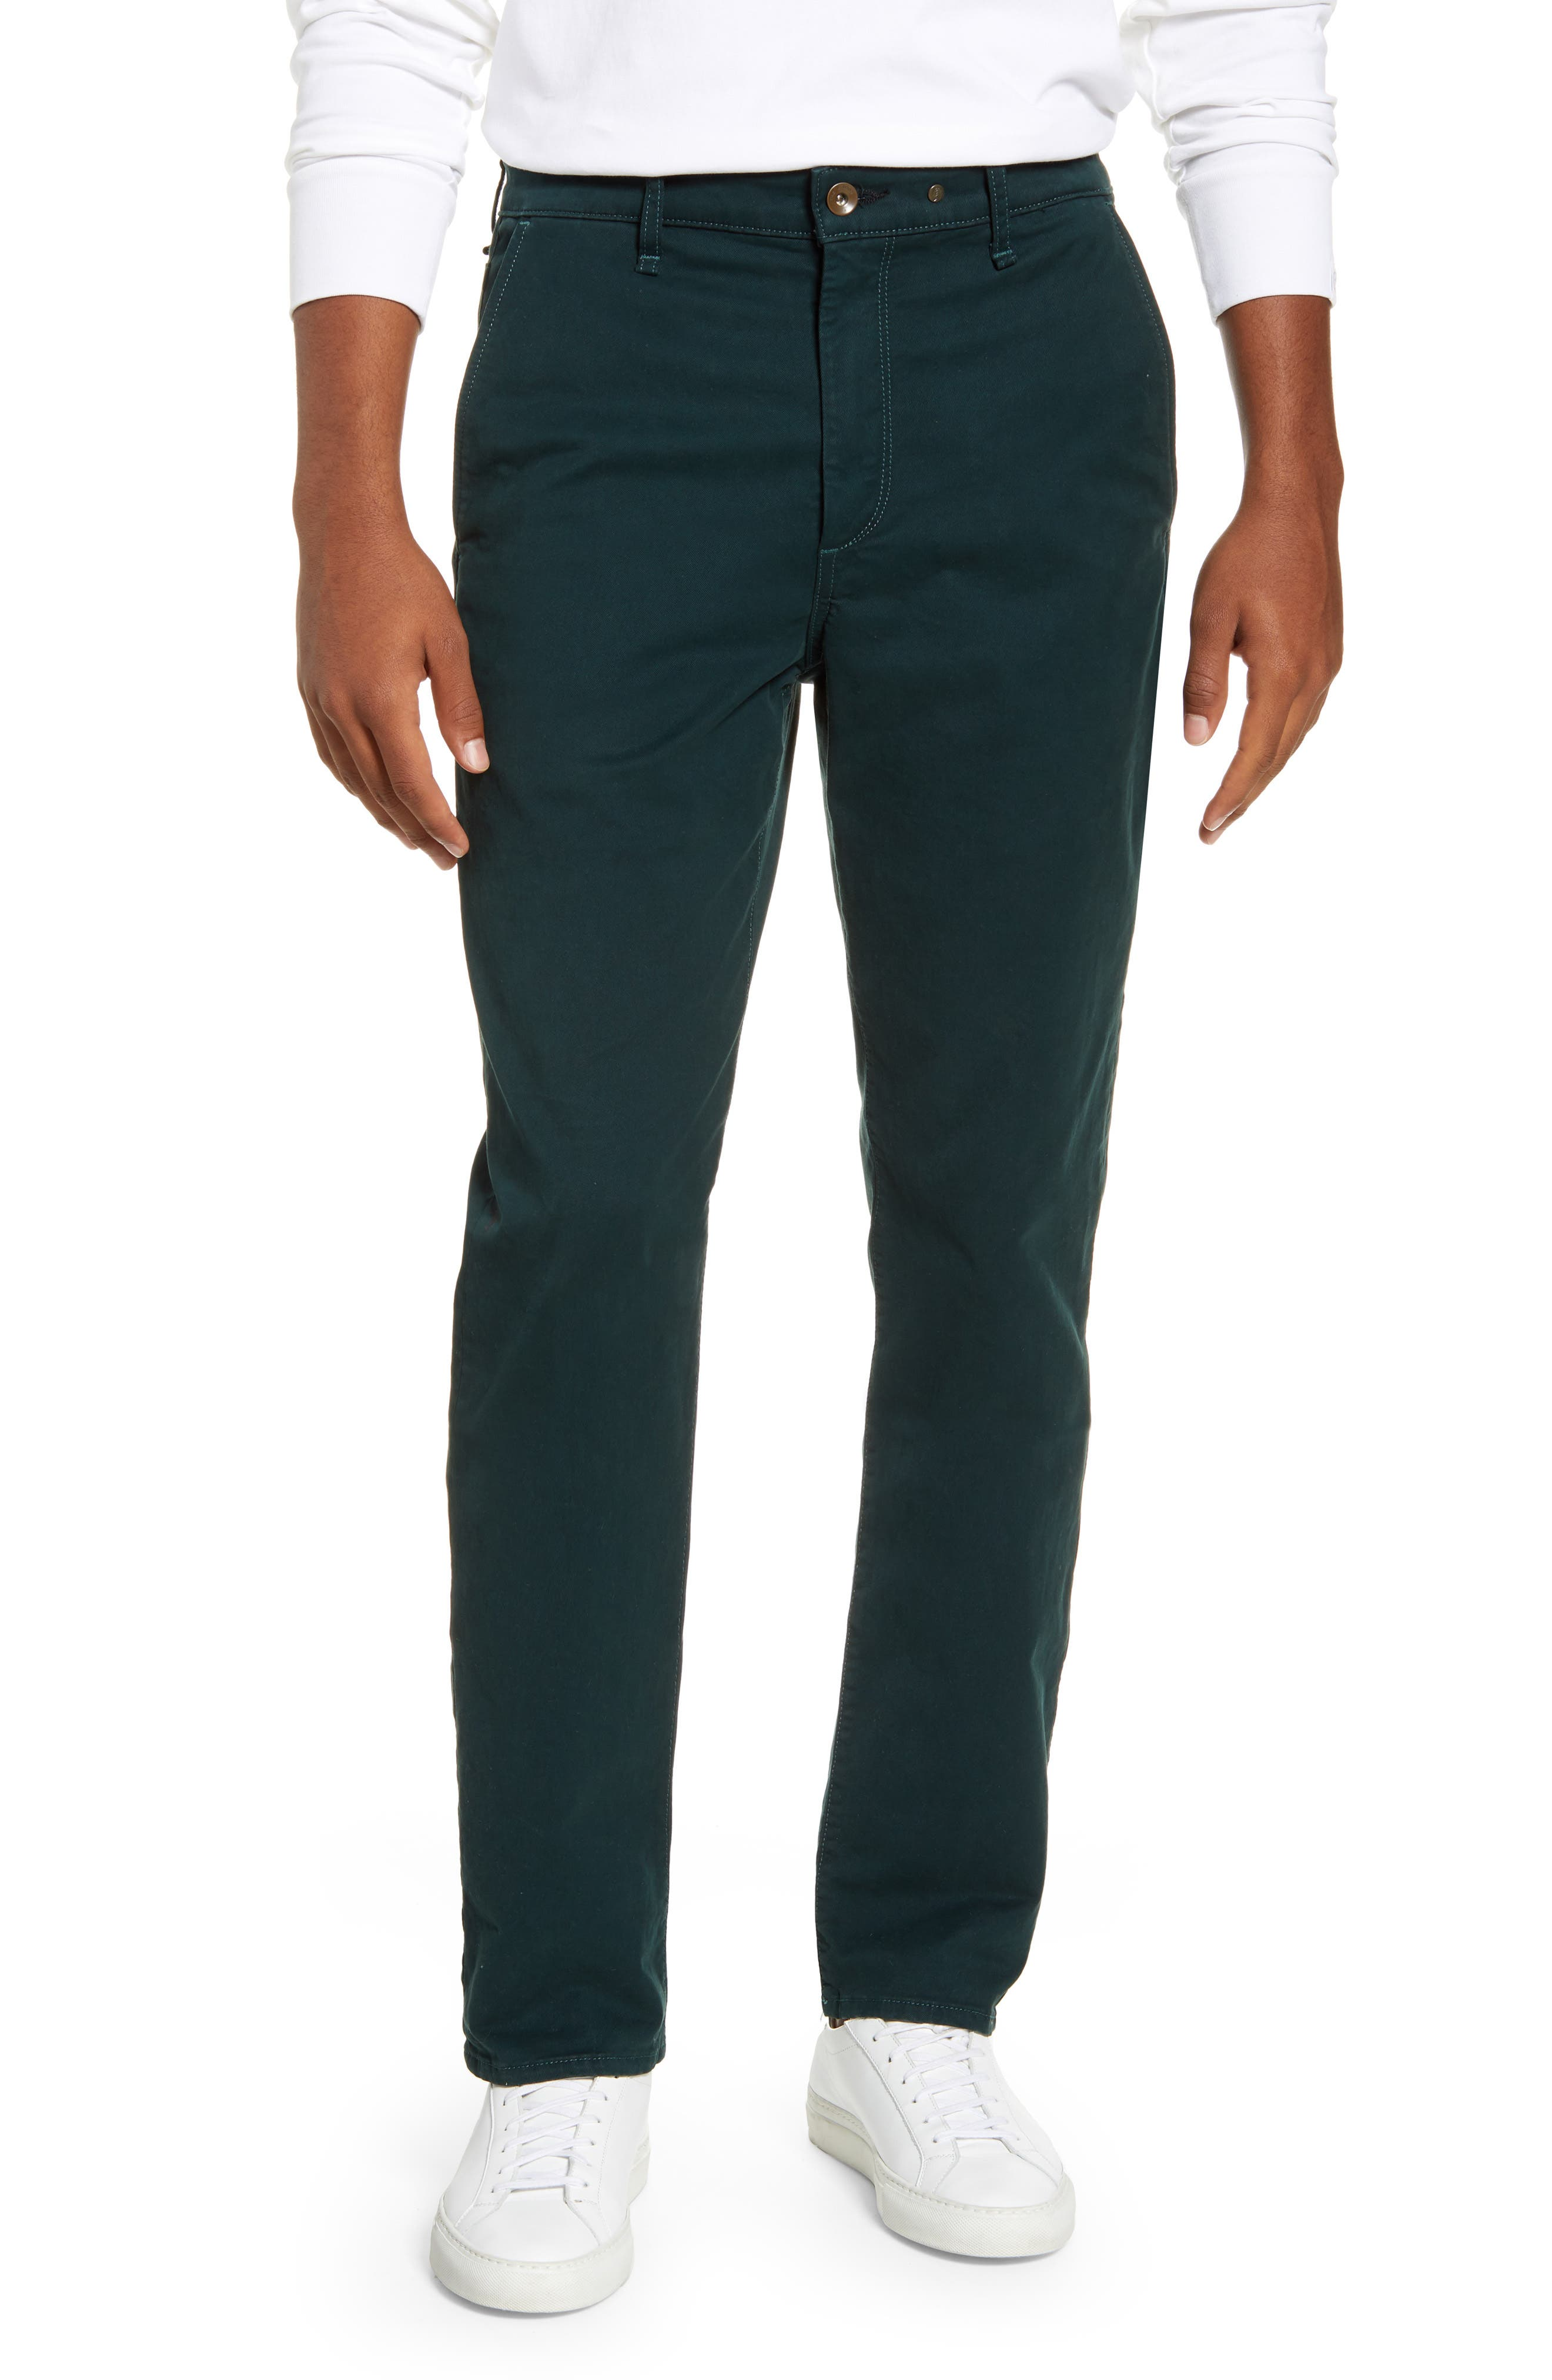 Image of Rag & Bone Fit 2 Classic Slim Fit Chinos